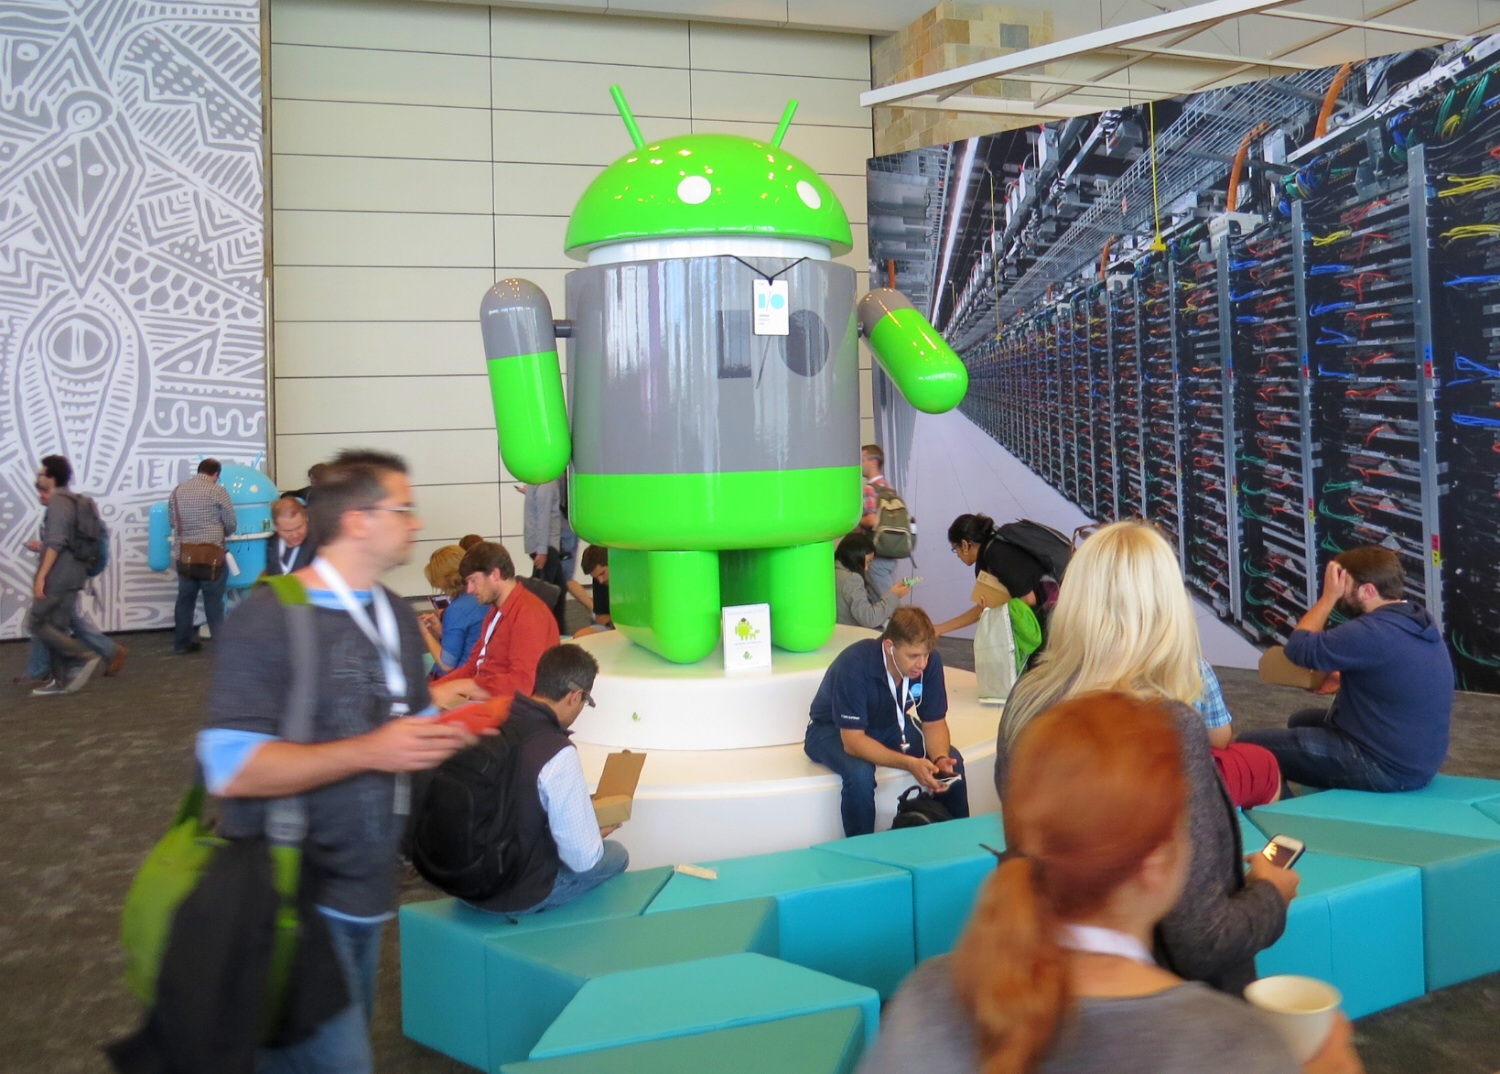 One of many giant Androids towering over the human attendees at Google I/O at San Francisco's Moscone Center